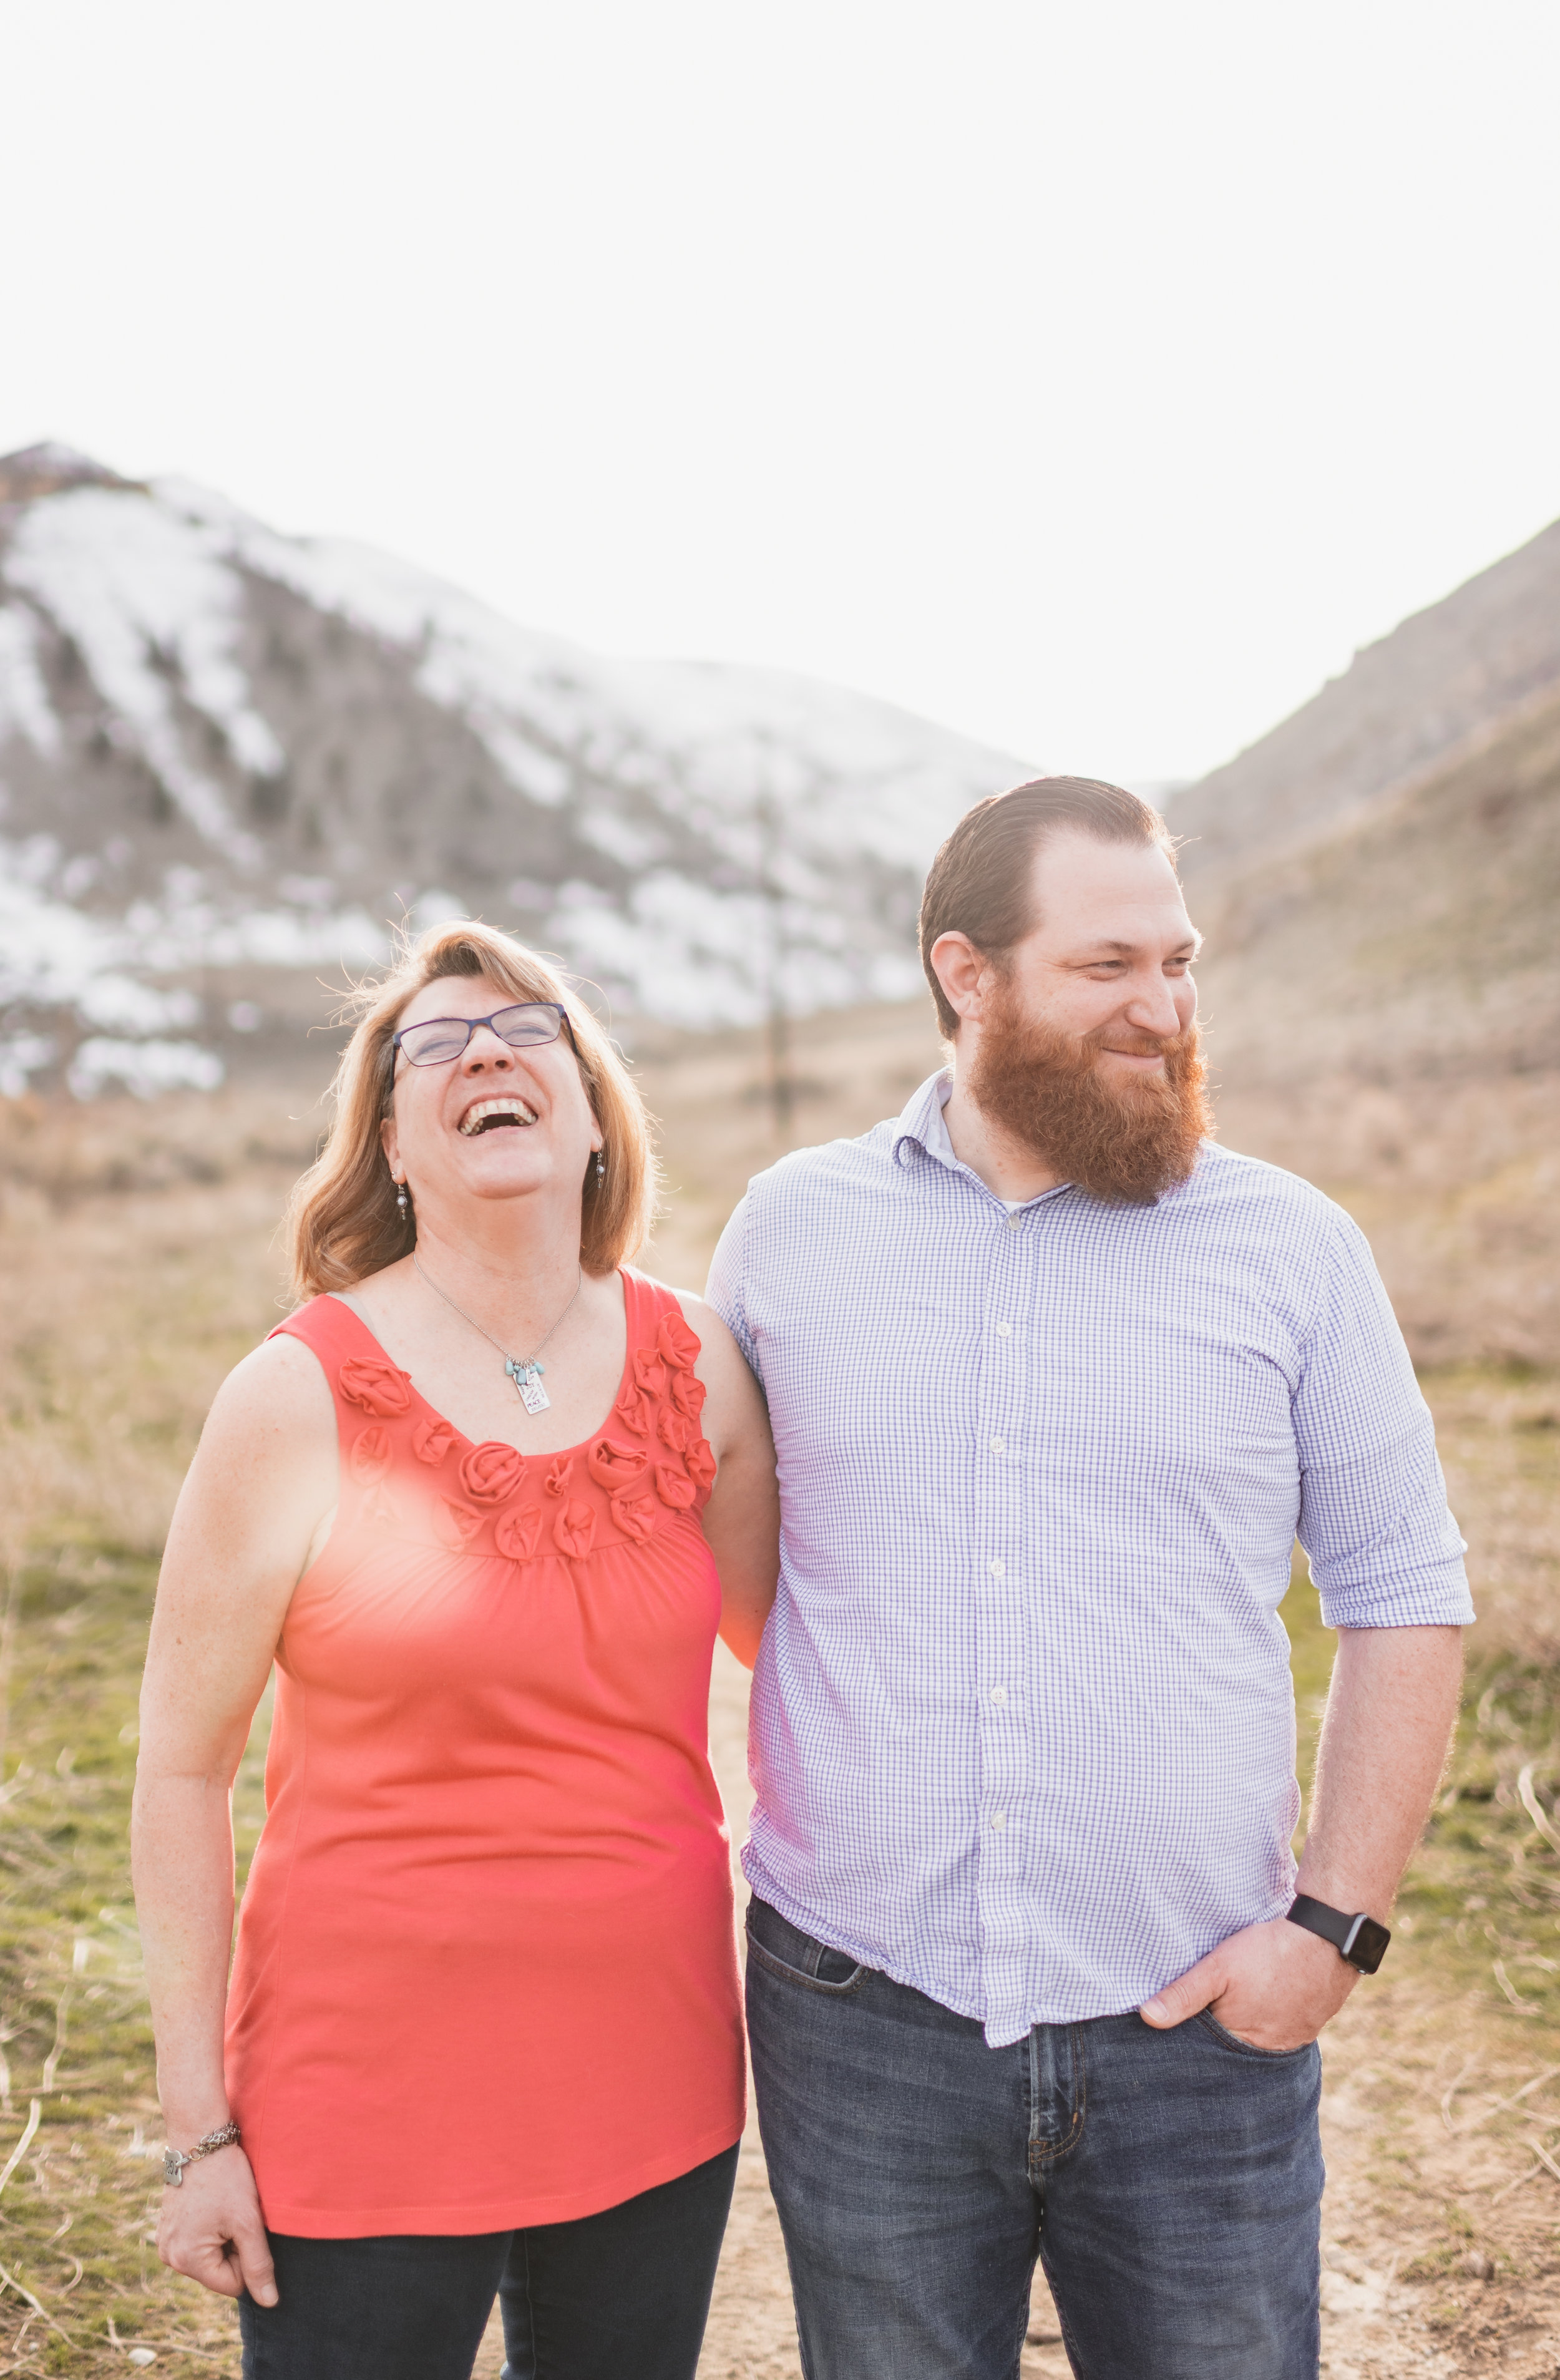 affordable family photographer in wenatchee or chelan